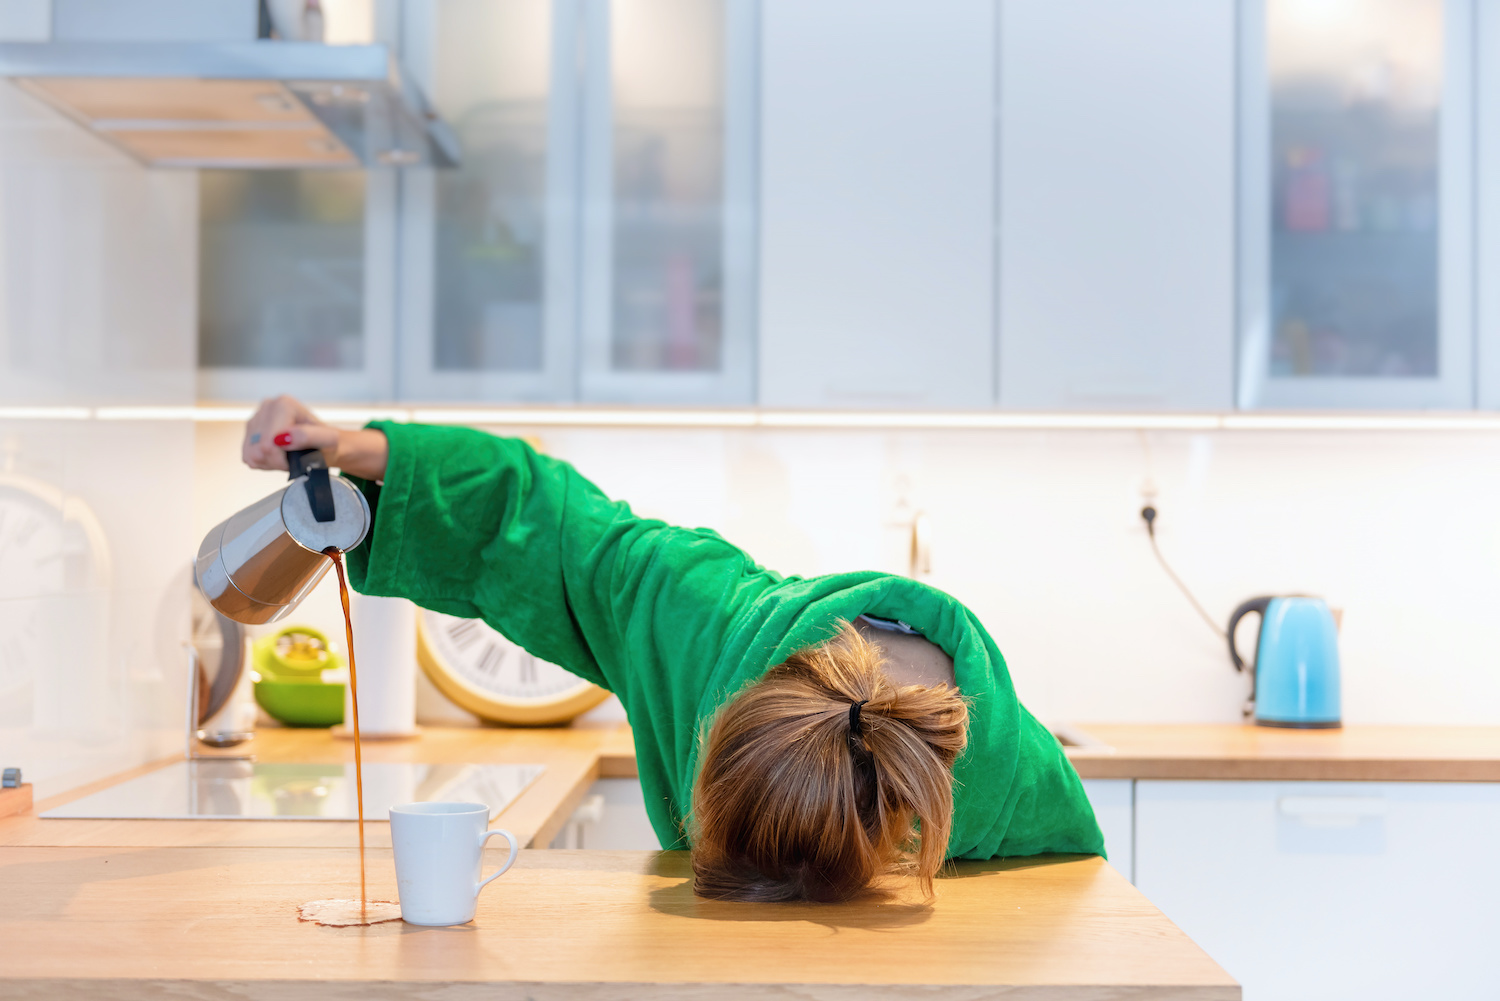 How to heal adrenal fatigue: Woman falling asleep while pouring coffee